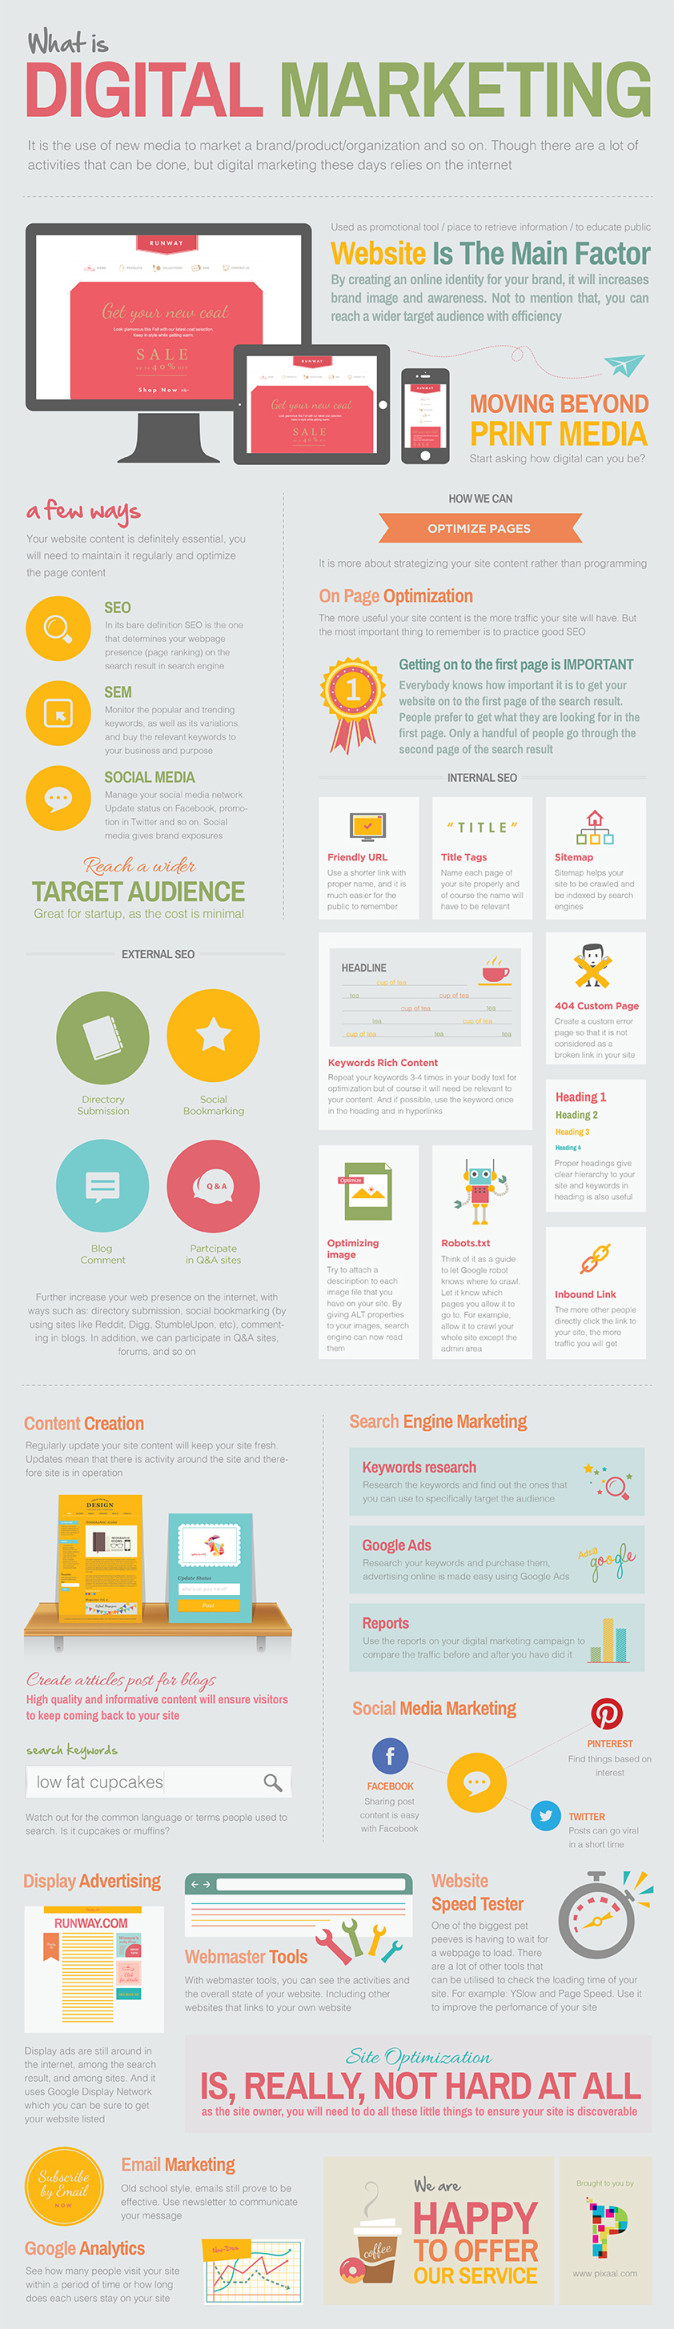 How To Carry Out Digital Marketing | Infographic | UltraLinx